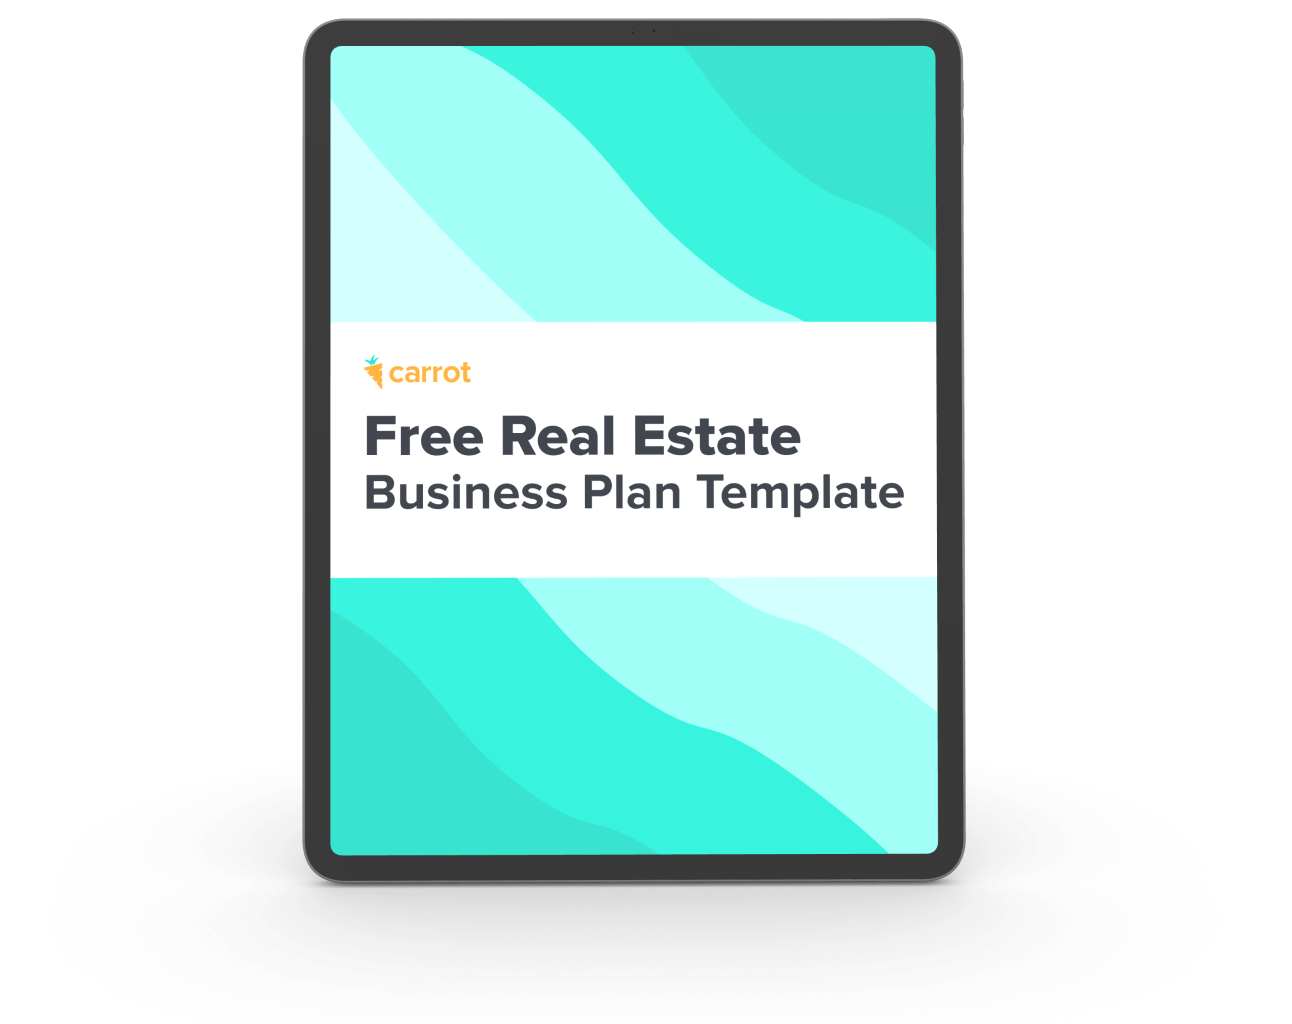 real estate business plan template ipad